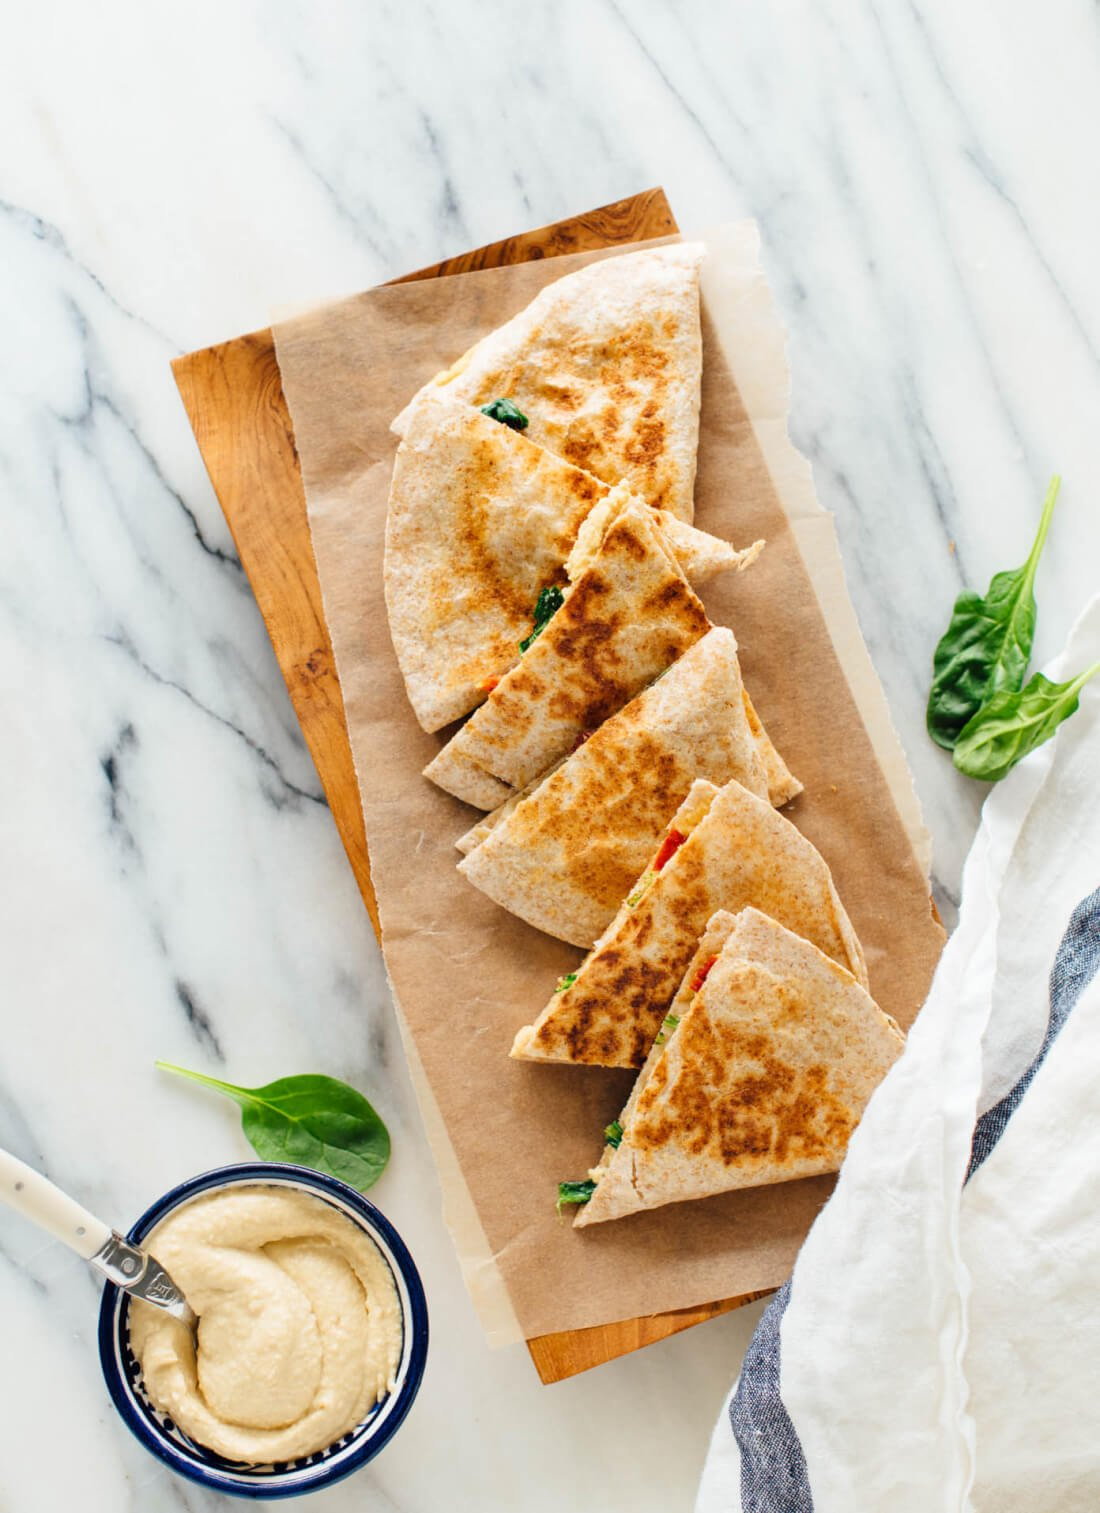 These quesadillas are made with hummus instead of cheese, and they are absolutely delicious! These hummus quesadillas are a healthy, dairy-free and vegan snack or meal. cookieandkate.com